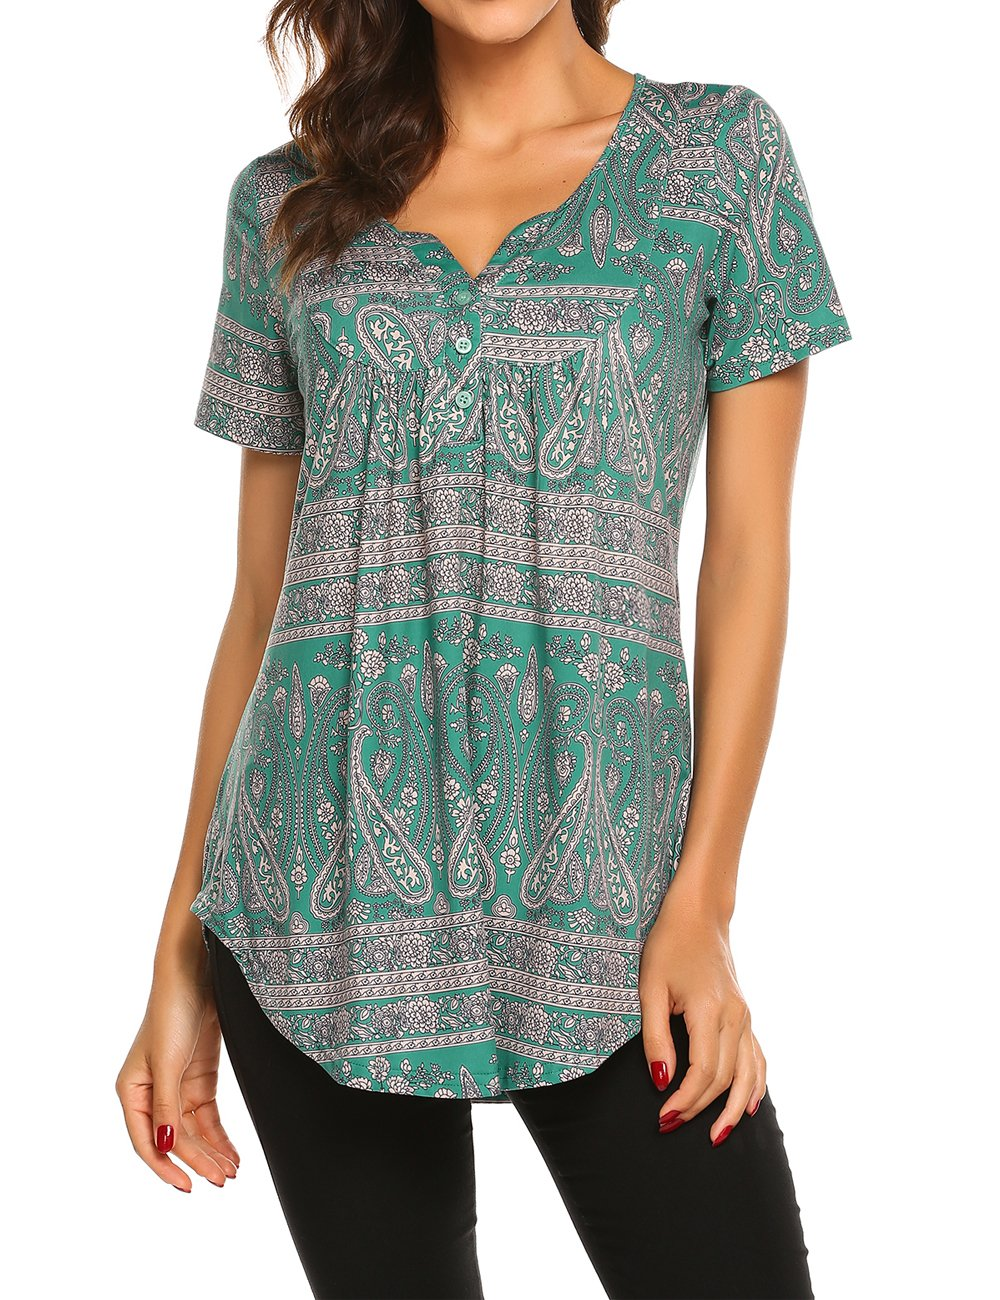 Womens Short Sleeve Flare Tunic Tops Loose Fit Paisley Print Summer Henley Blouse Dark Green,L